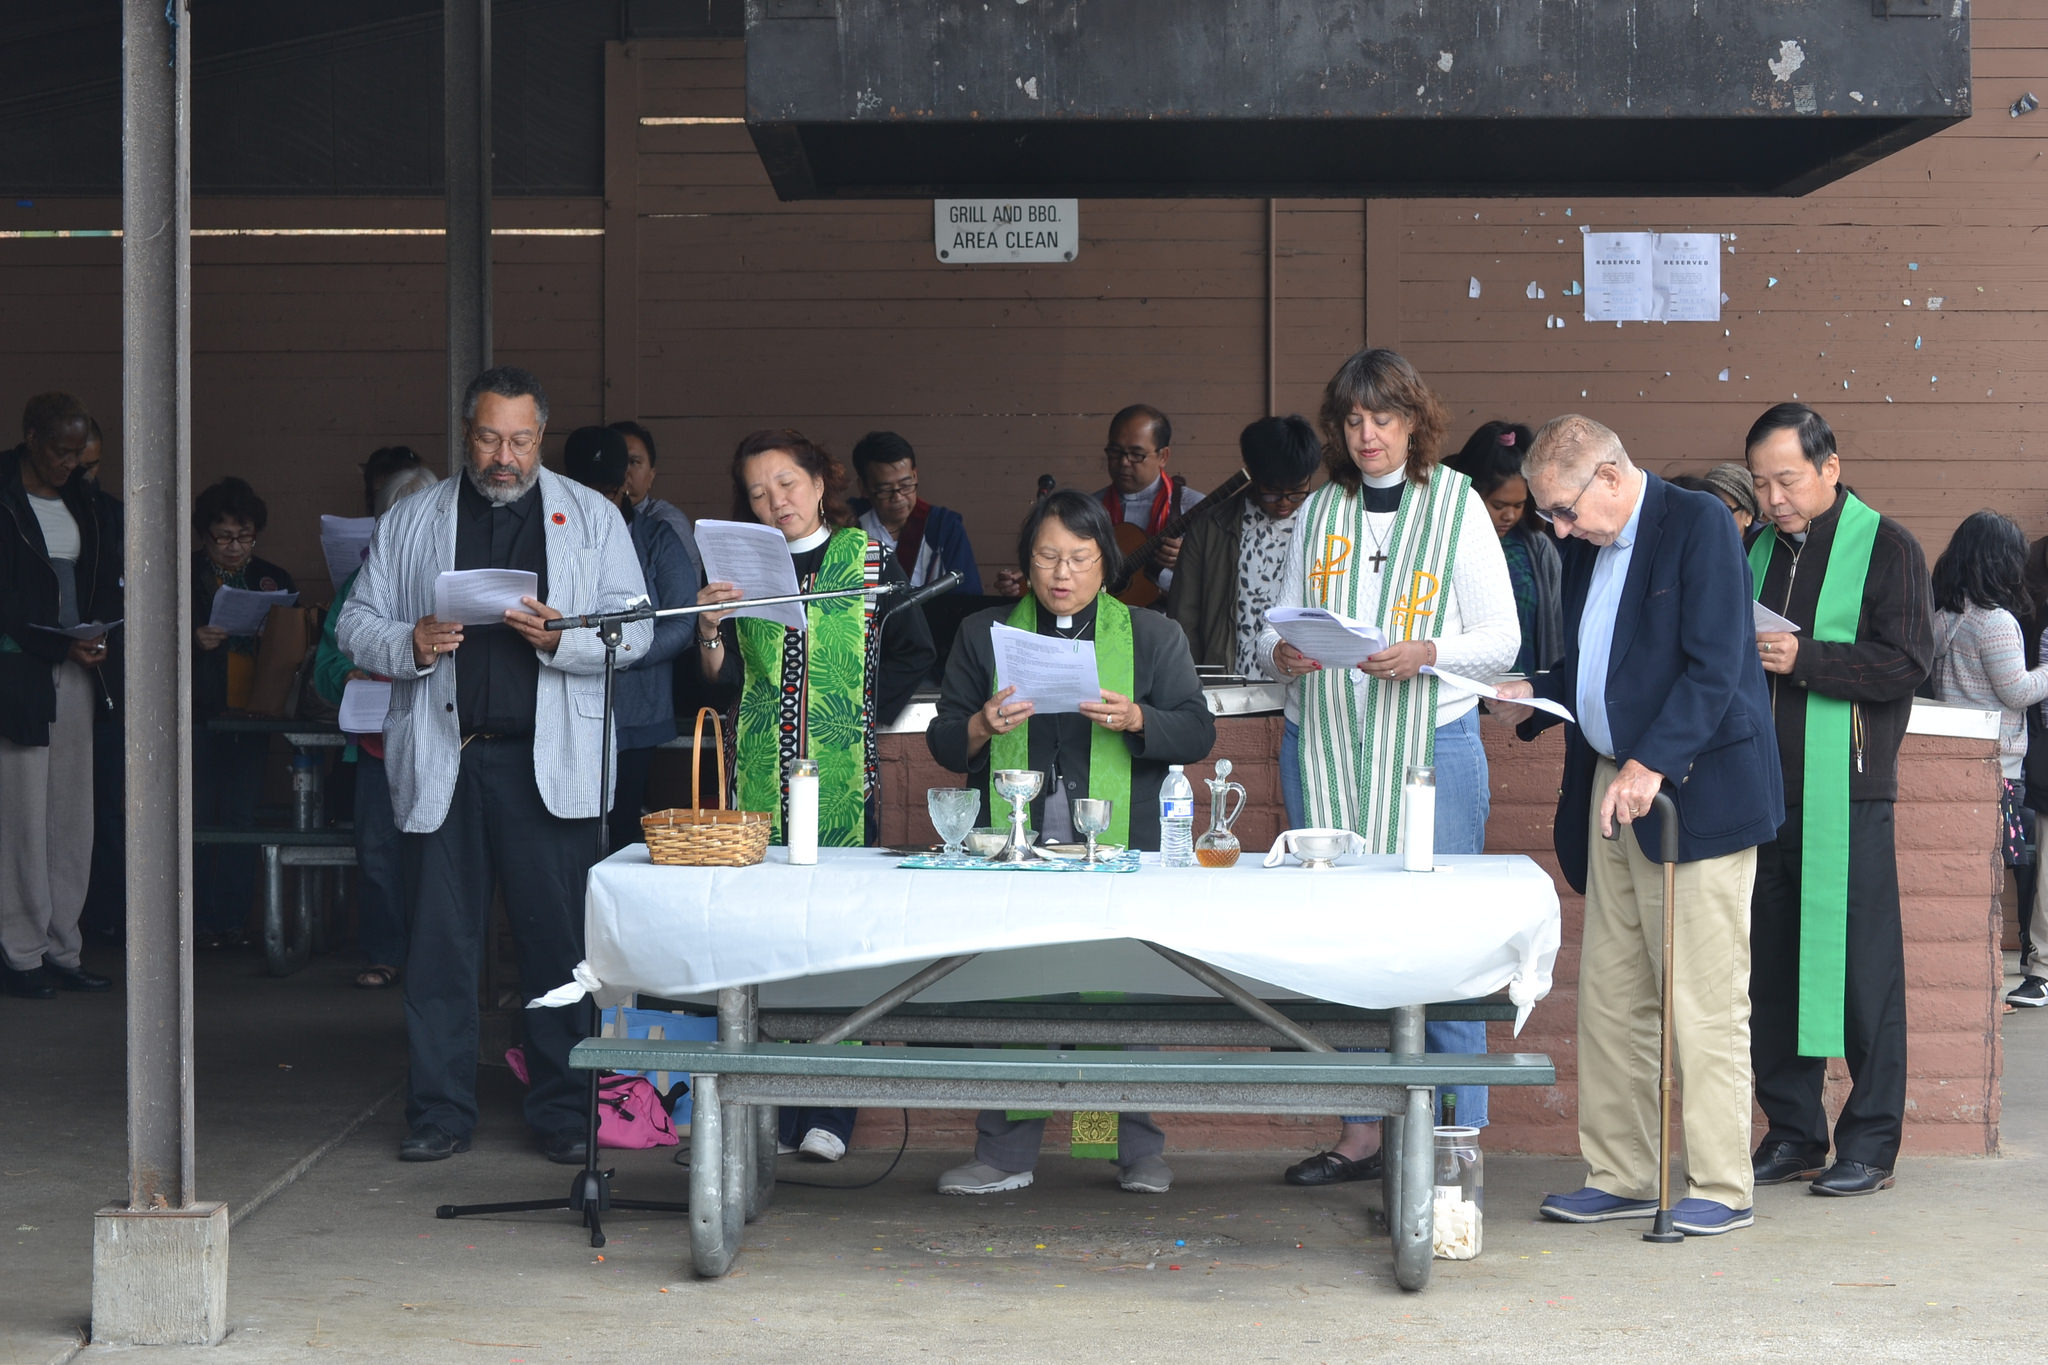 Clergy presiding at the Joint Holy Eucharist (l to r): The Revs. Eric Metoyer, Merry Chan Ong, Debbie Low-Skinner, Rebecca Goldberg, Thomas Chesterman, and Joshua Ng